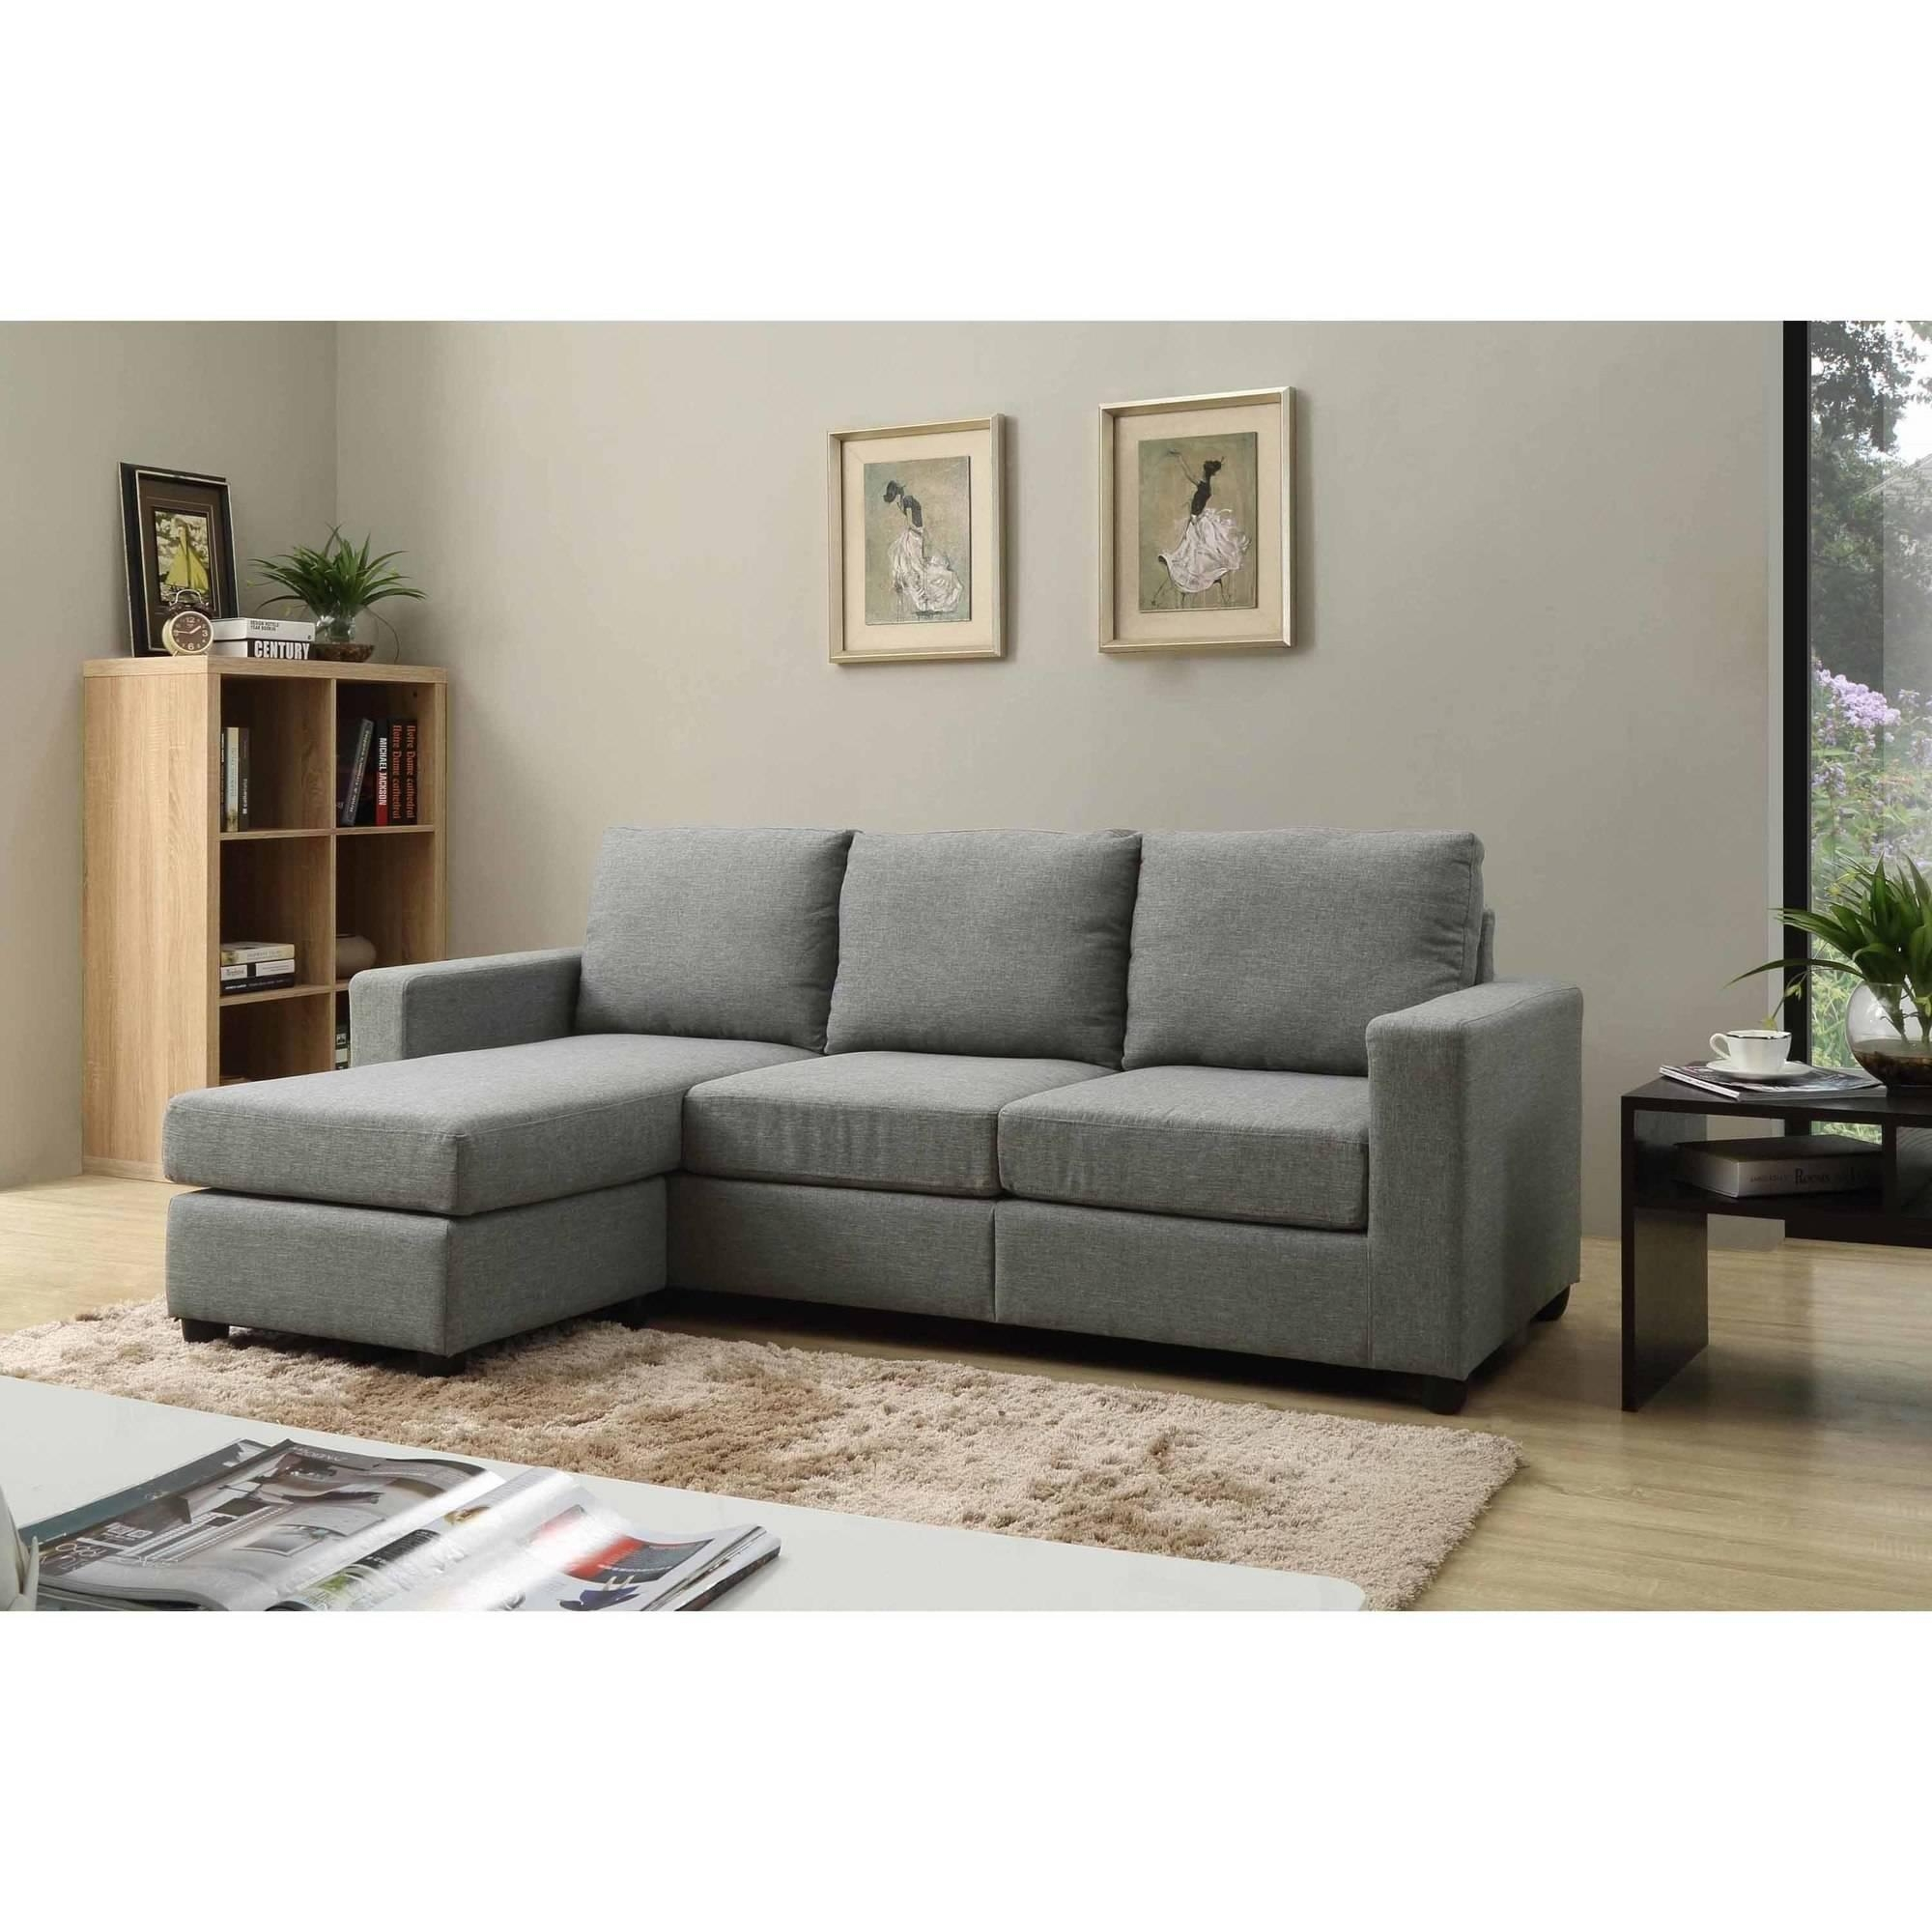 Nathaniel Home Alexandra Small Space Convertible Sectional Regarding Convertible Sectional Sofas (View 15 of 15)